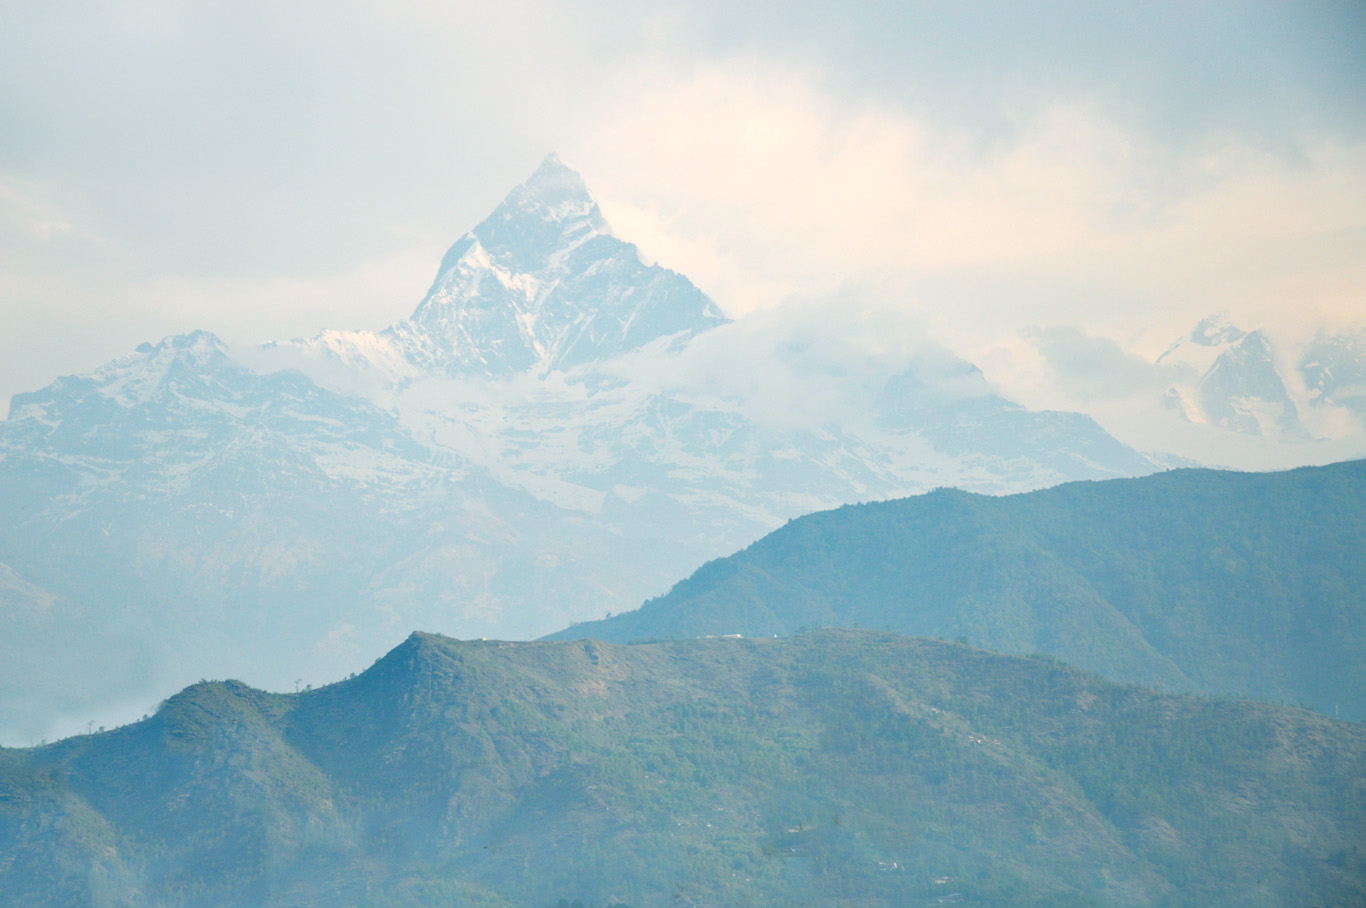 The famous fish tale mountain (nearly 7000 meters above sea level)